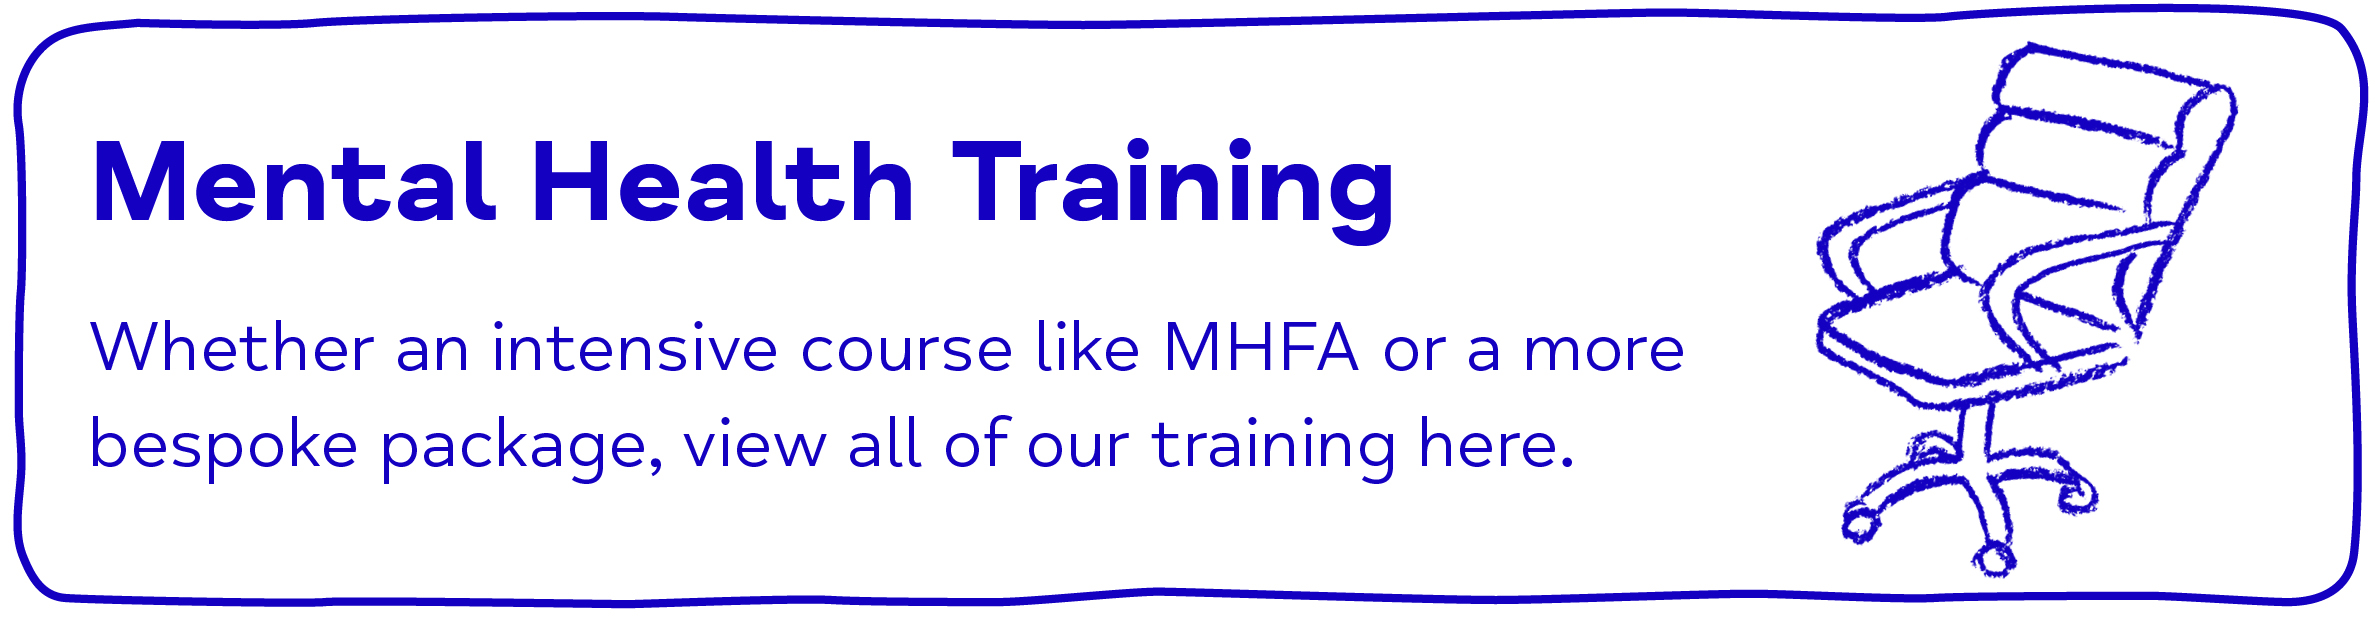 Mental Health Training Whether an intensive course like MHFA or a more bespoke package, view all of our training here.